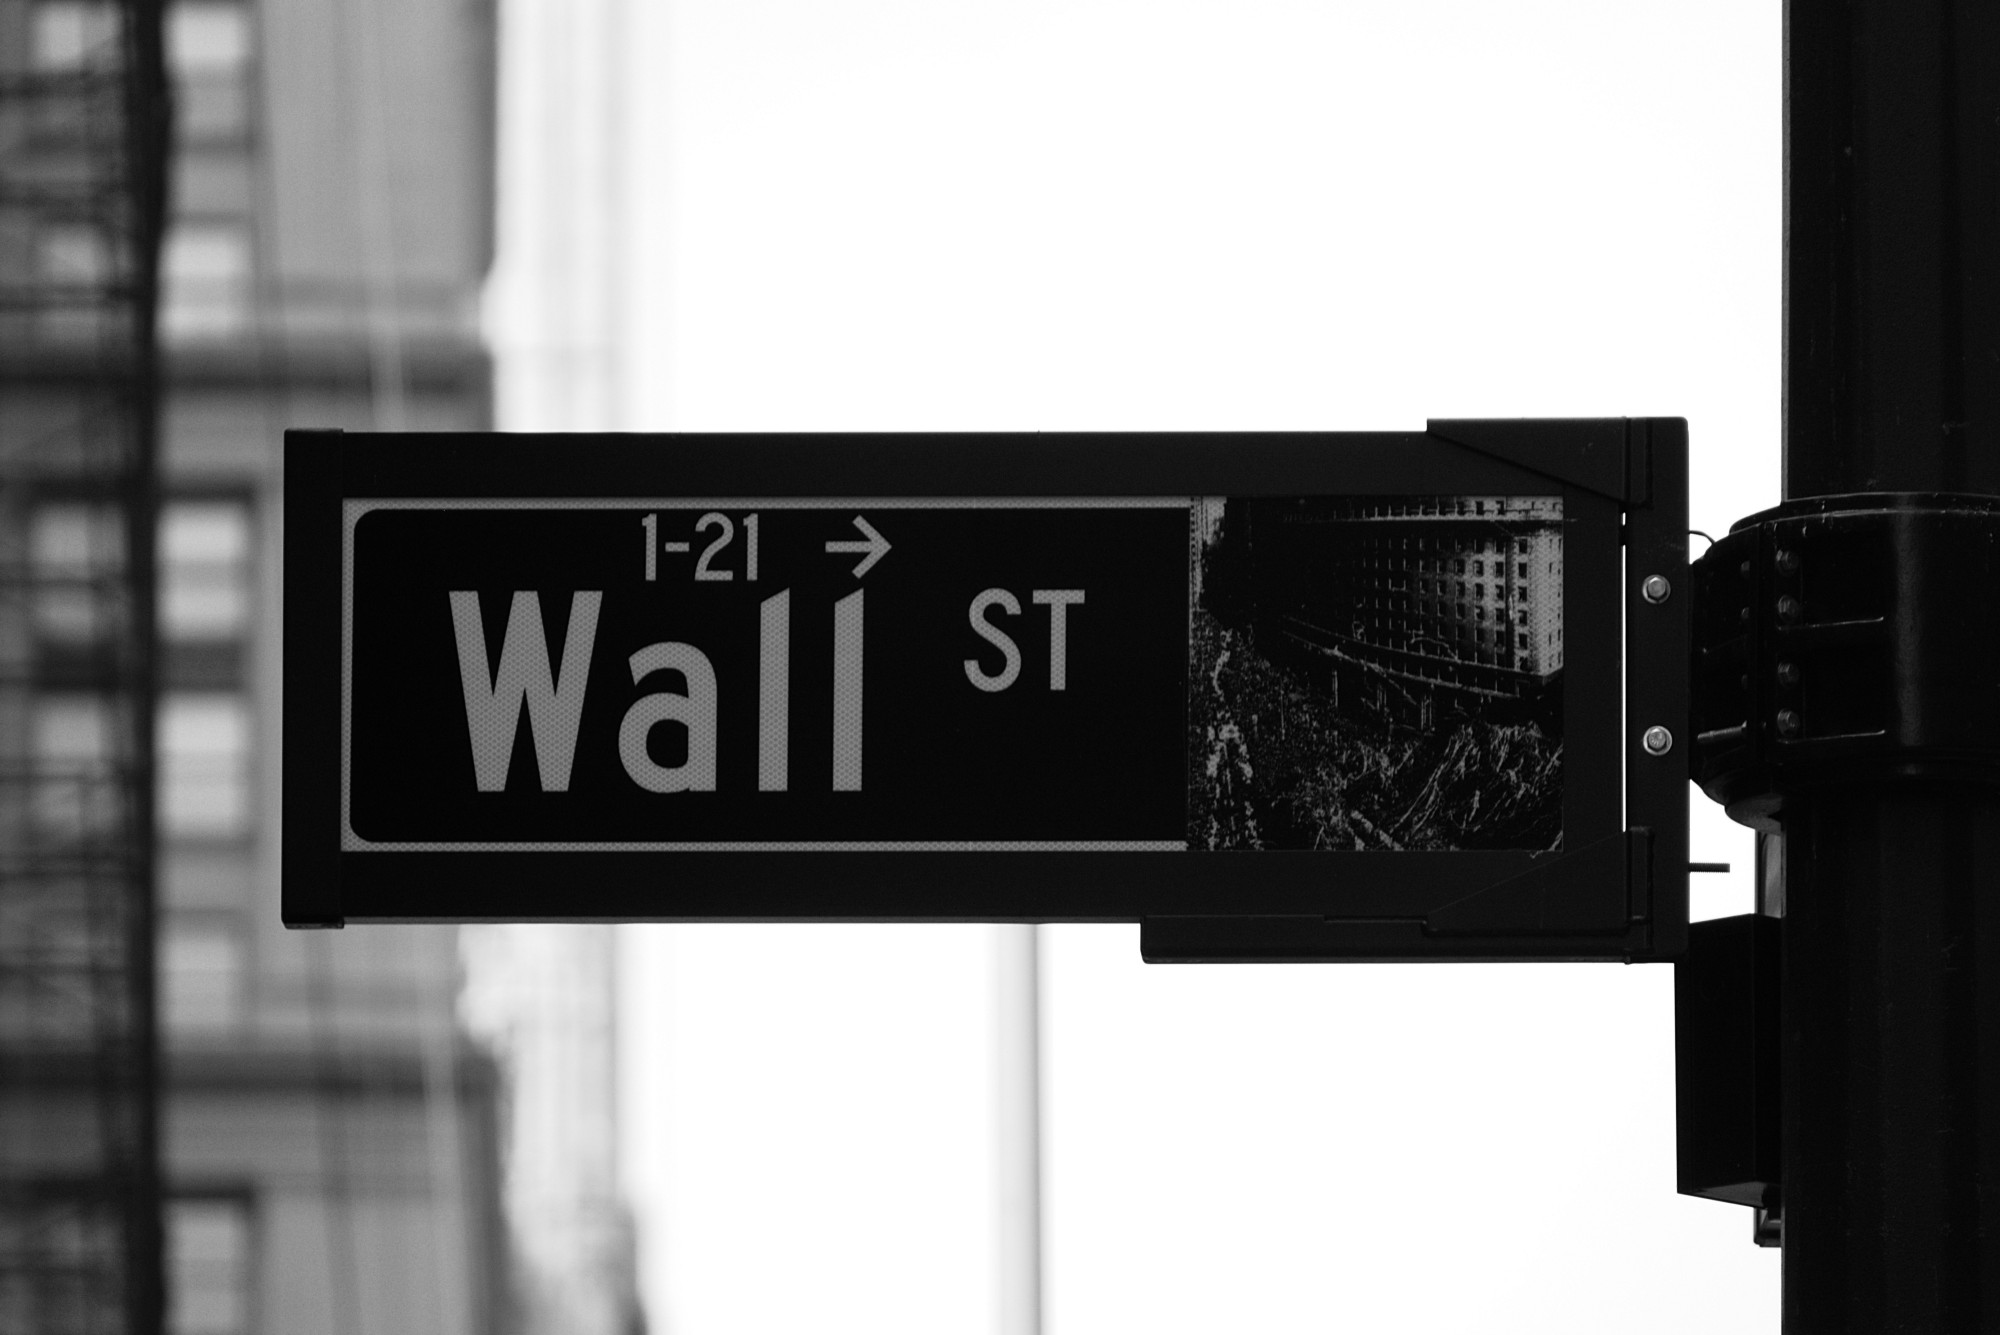 Investing in gold, gold, gold analysts, how to buy gold, Wall Street analysts, Wall Street sign, gold analysts predictions